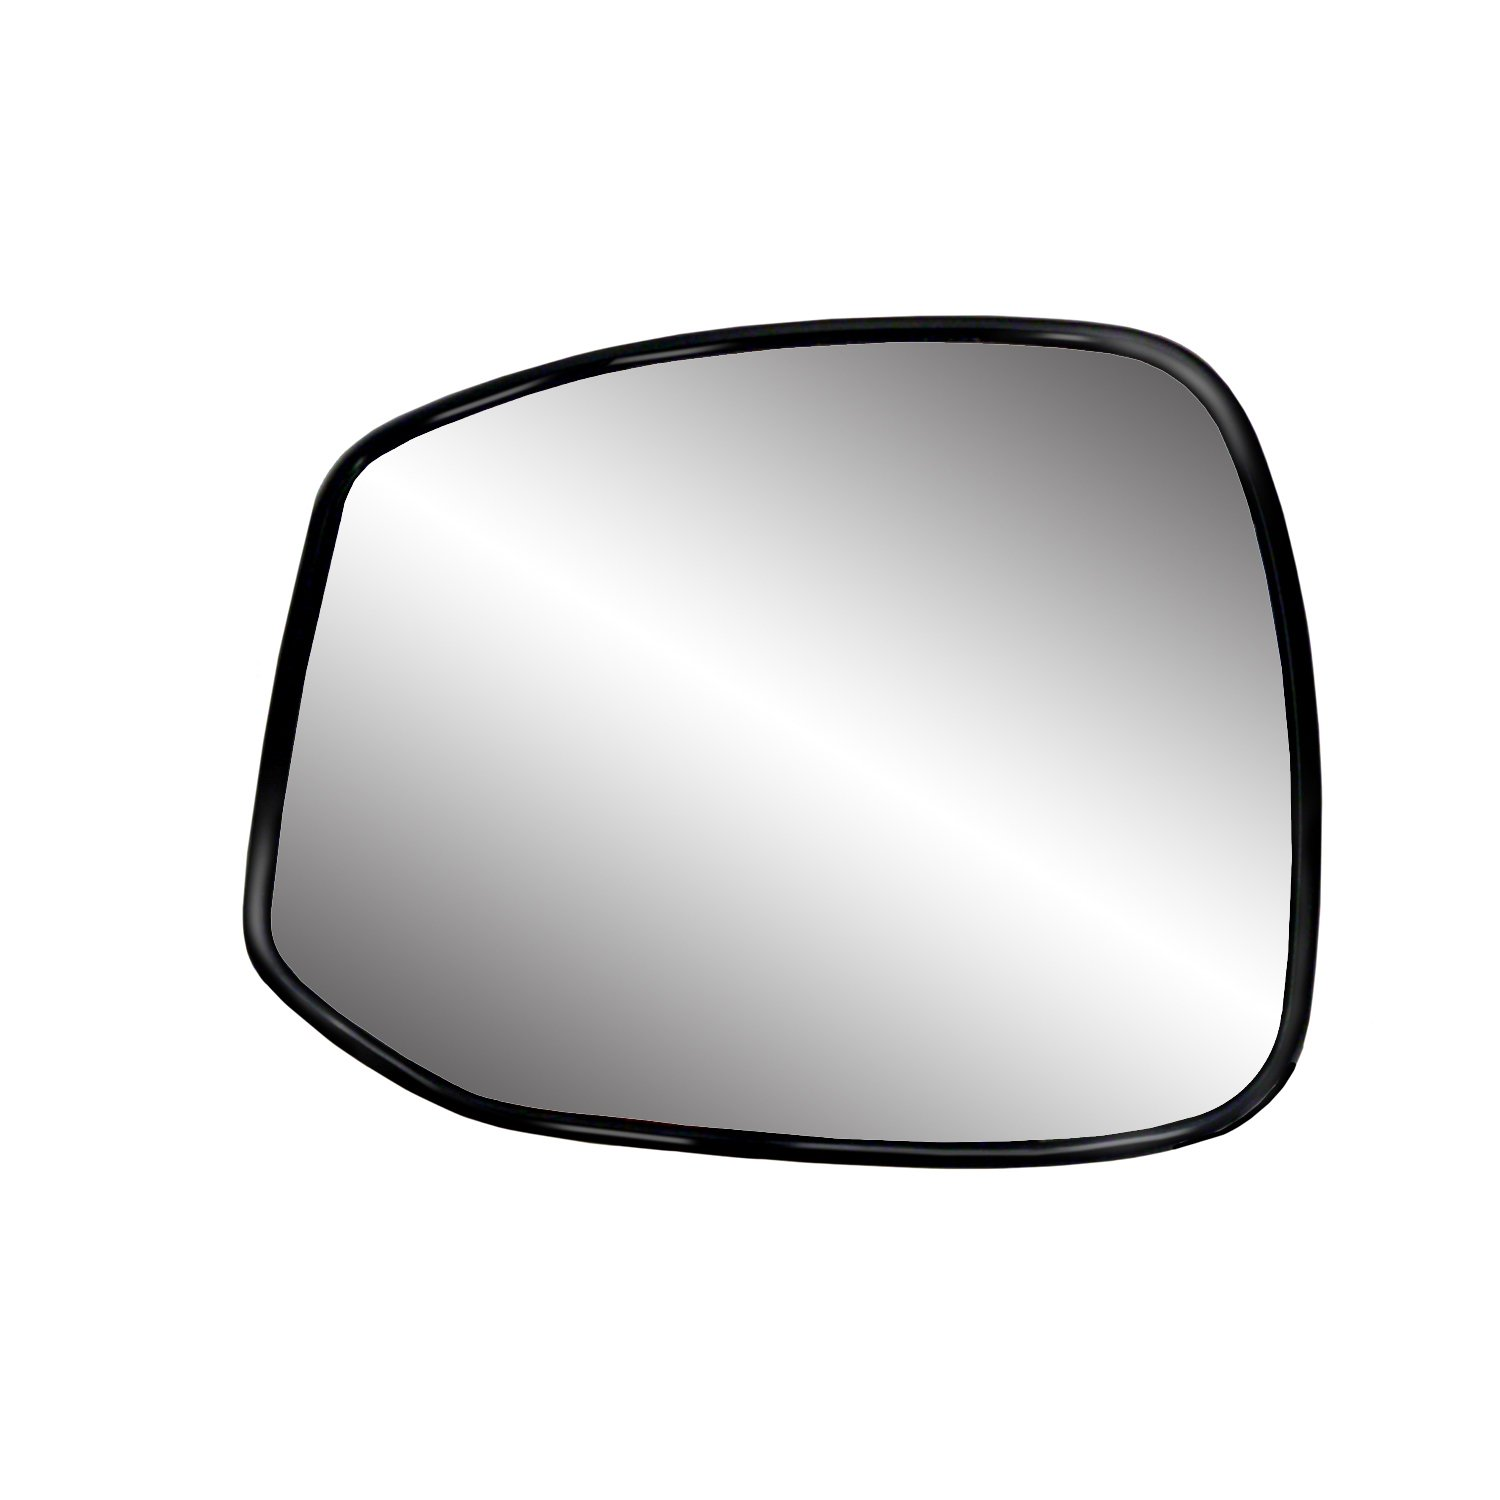 Fit System 30270 Honda Civic Right Side Heated Power Replacement Mirror Glass with Backing Plate